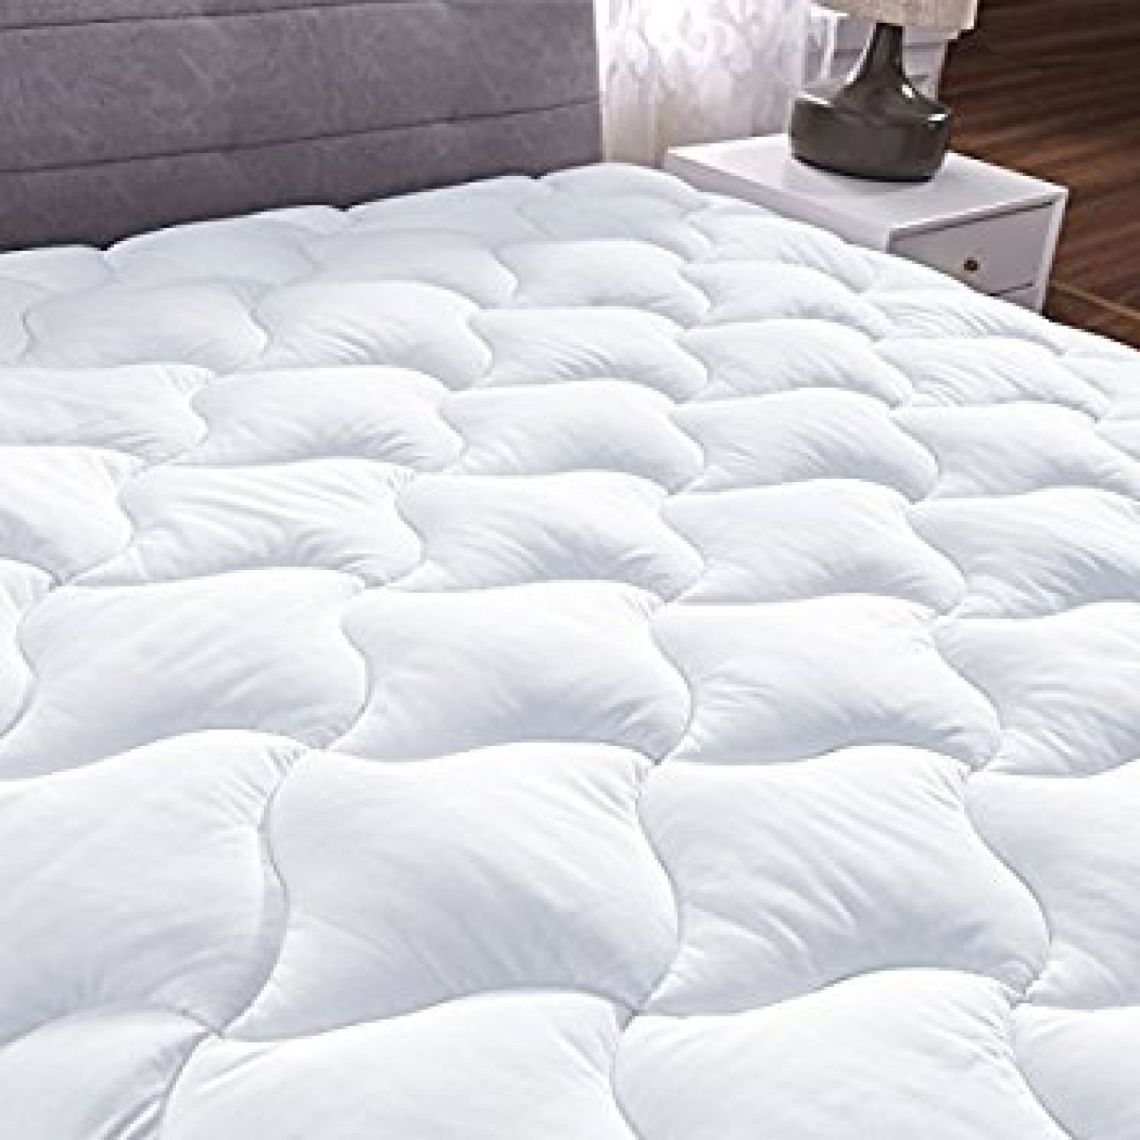 """Amazon.com: YOUMAKO Queen Size Mattress Pad Cover Hypoallergenic Quilted Pillowtop 8-21""""Deep Pocket Topper: Bedding & Bath"""